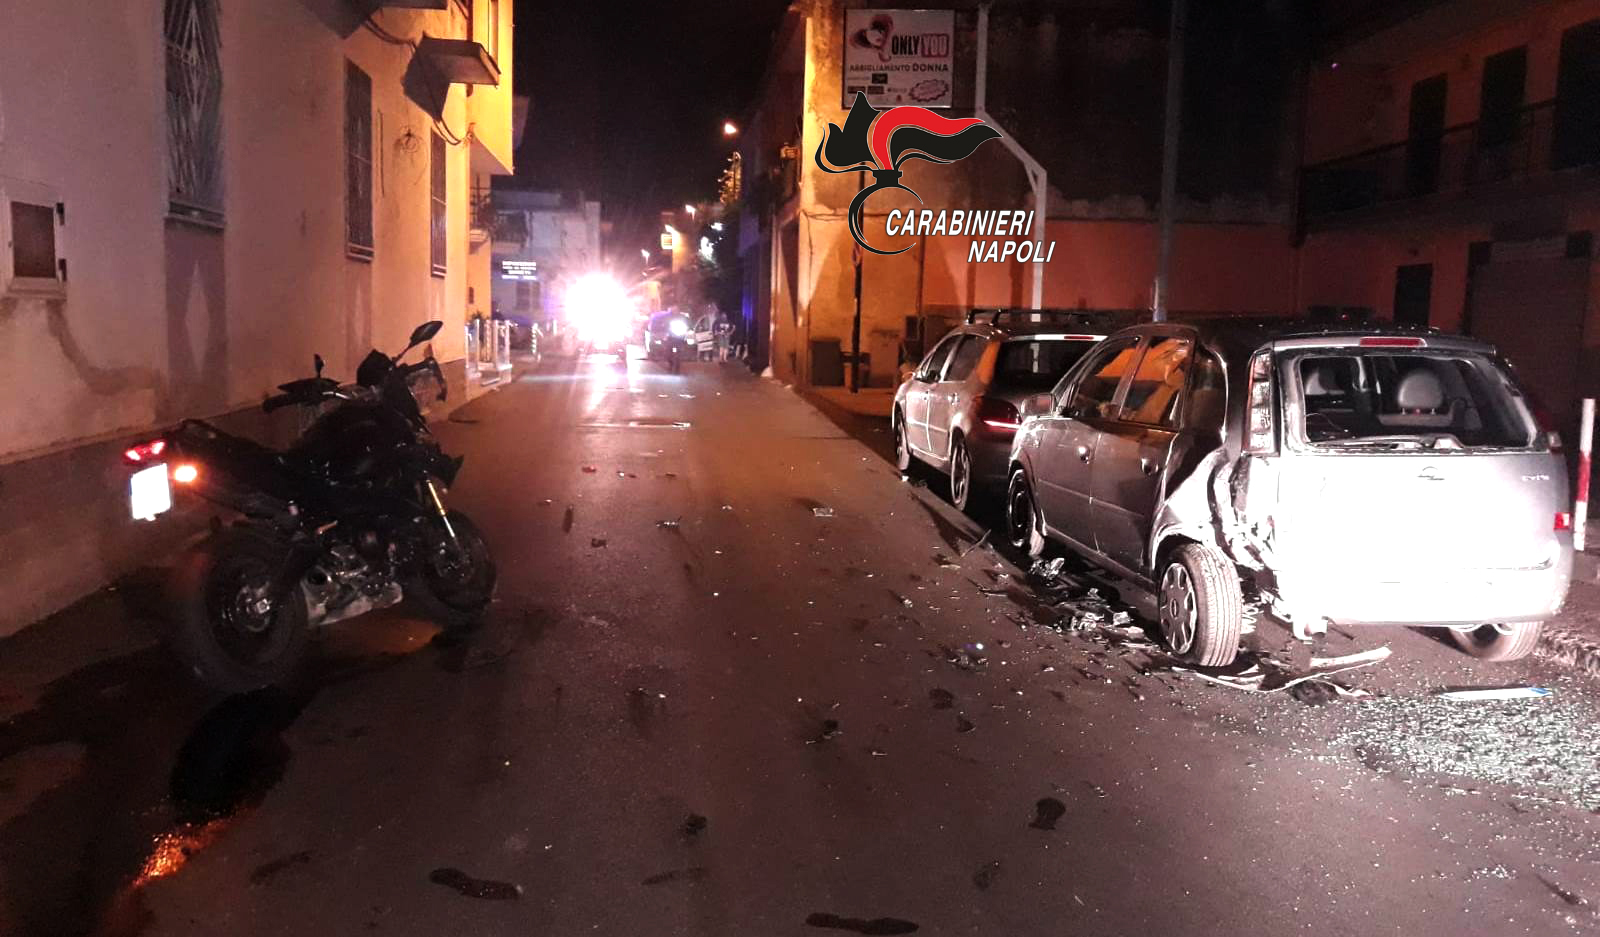 Inter, incidente stradale per il giovane Pasquale Carlino: lotta per la vita